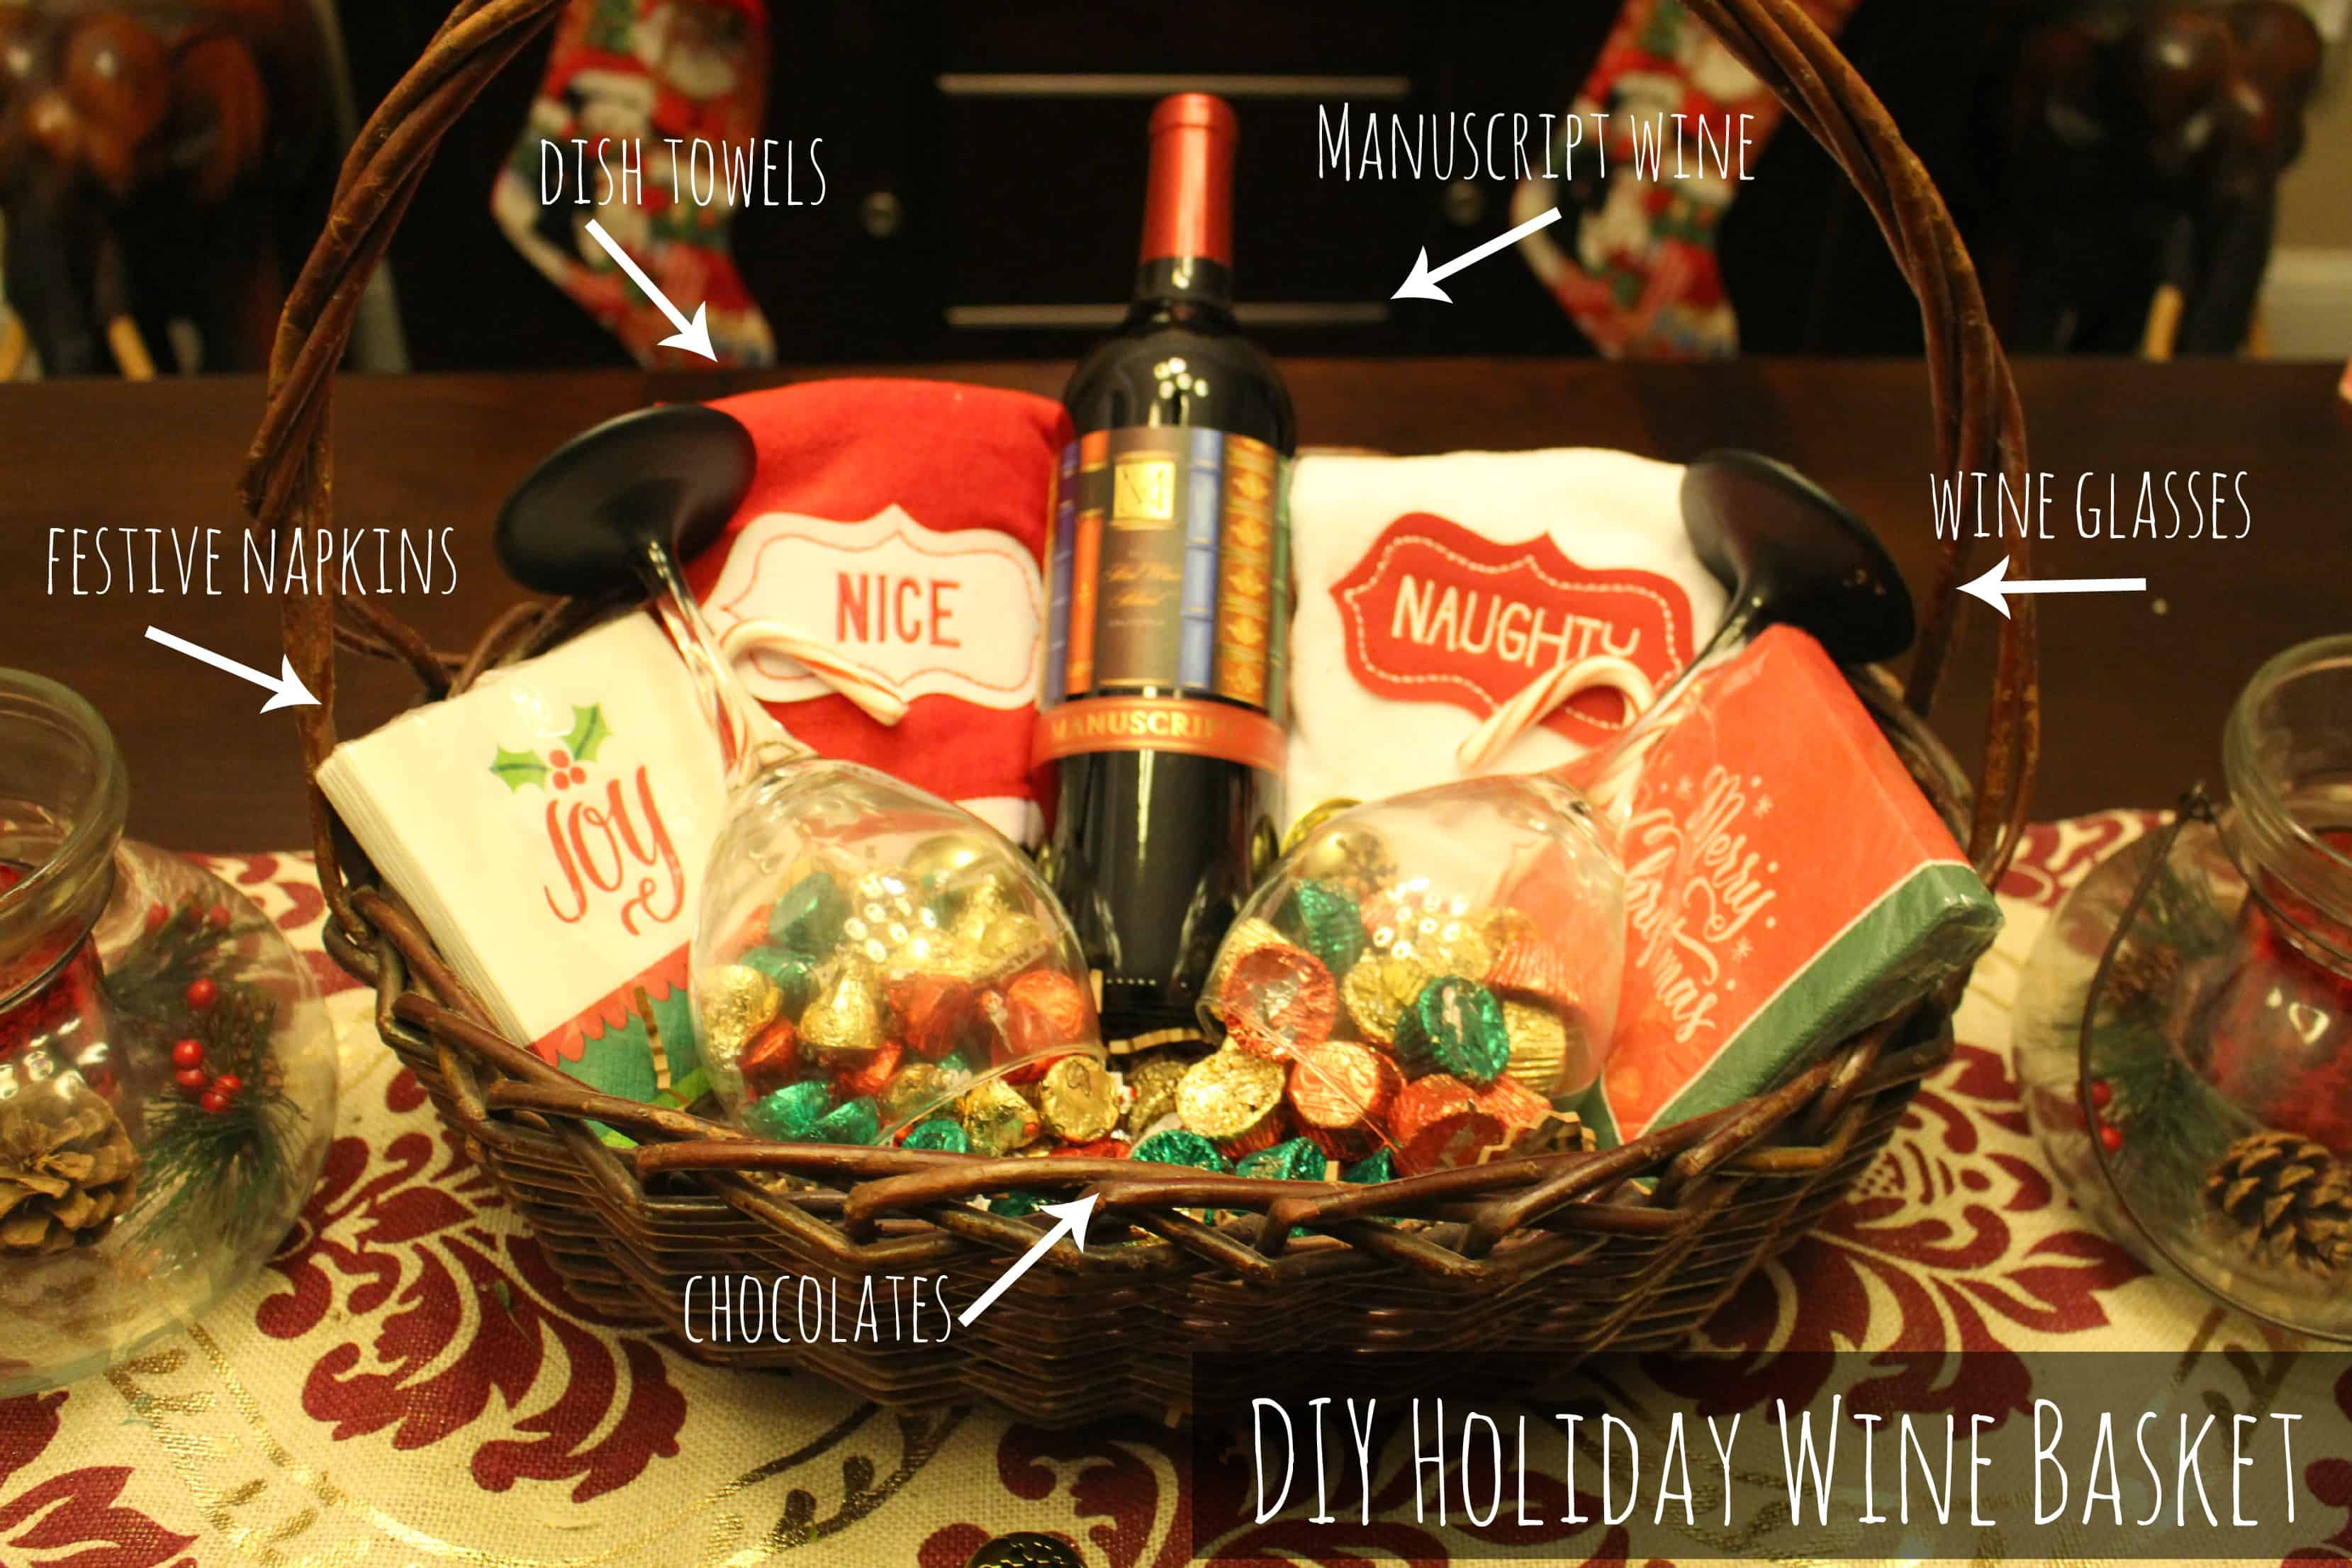 making a holiday wine basket can be as simple or as intricate as you want it to be i like to keep mine simple and themed since christmas will be here